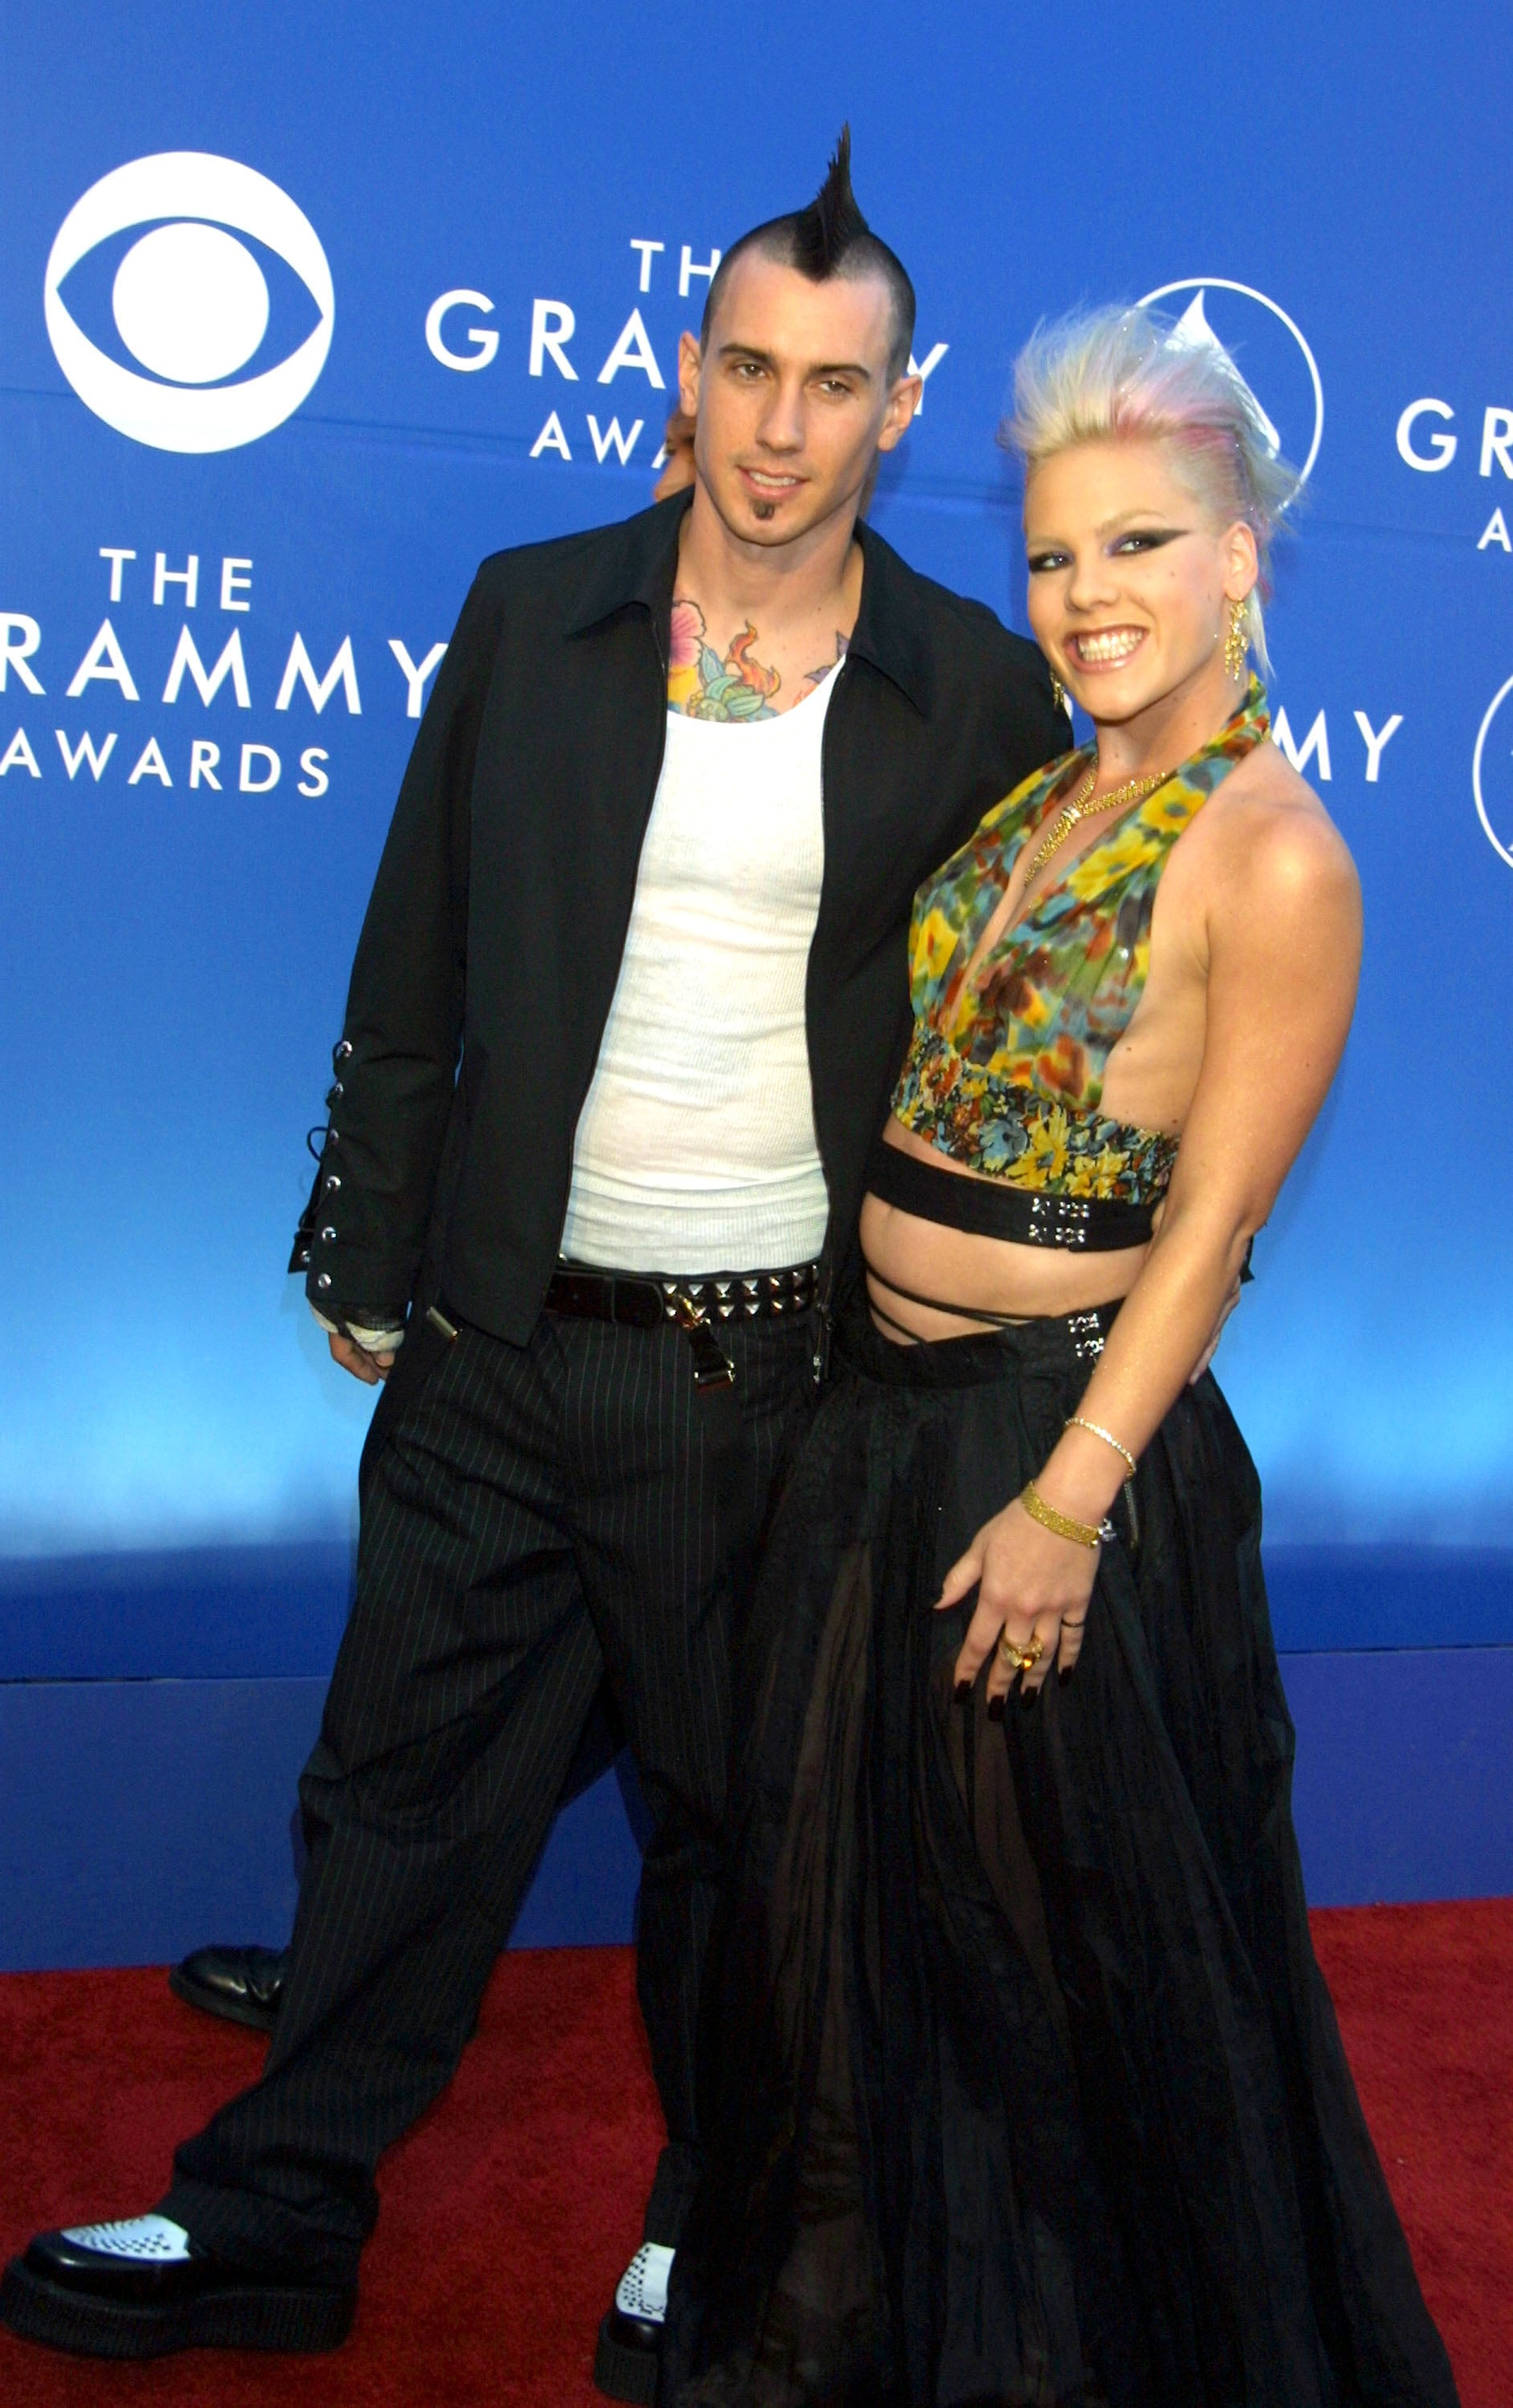 Pink and carey hart 2002 a look back at love at the grammys